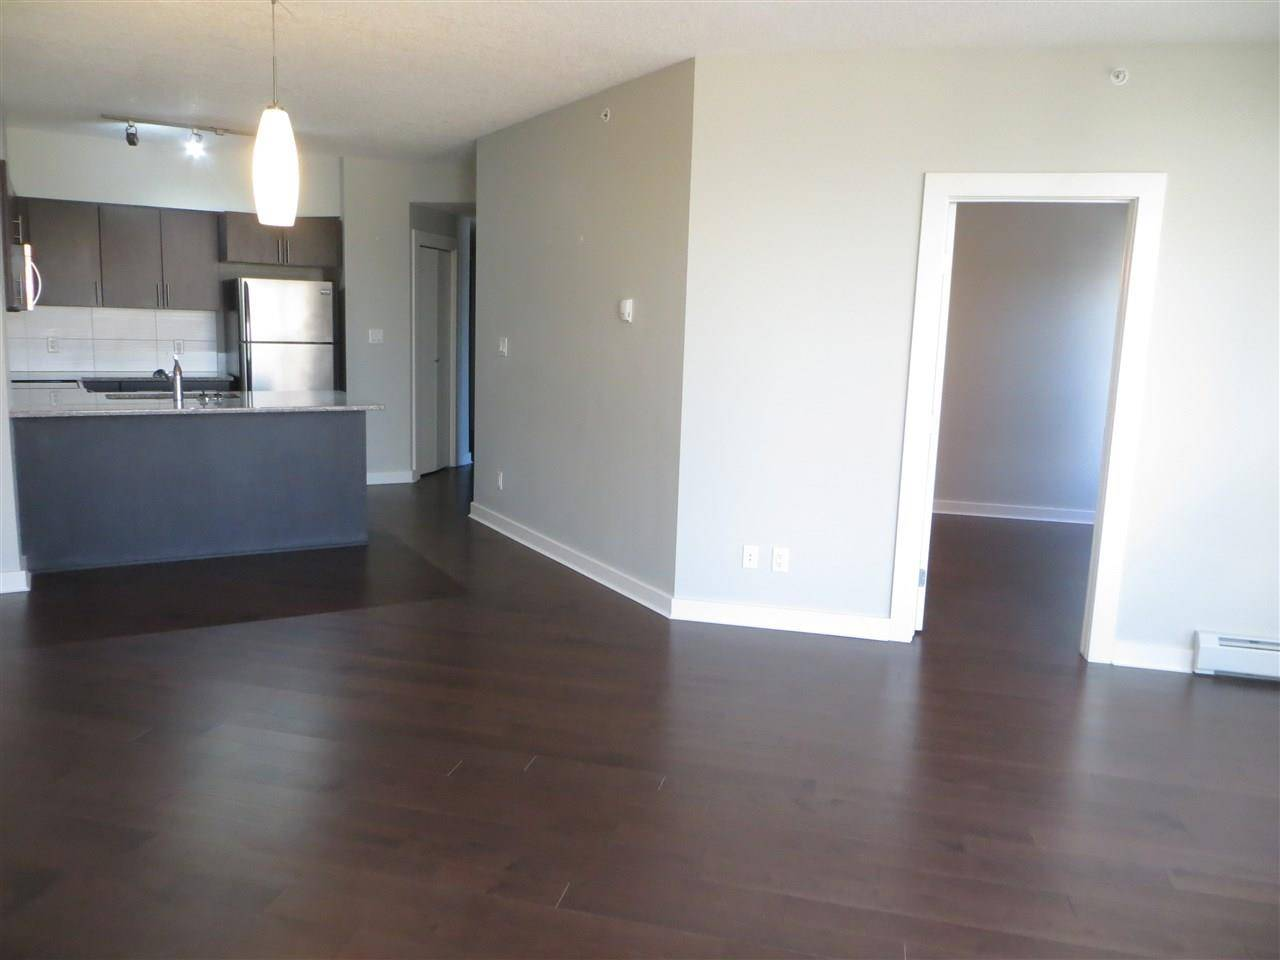 Condo for sale at 10152 104 St Nw Unit 1603 Edmonton Alberta - MLS: E4176065